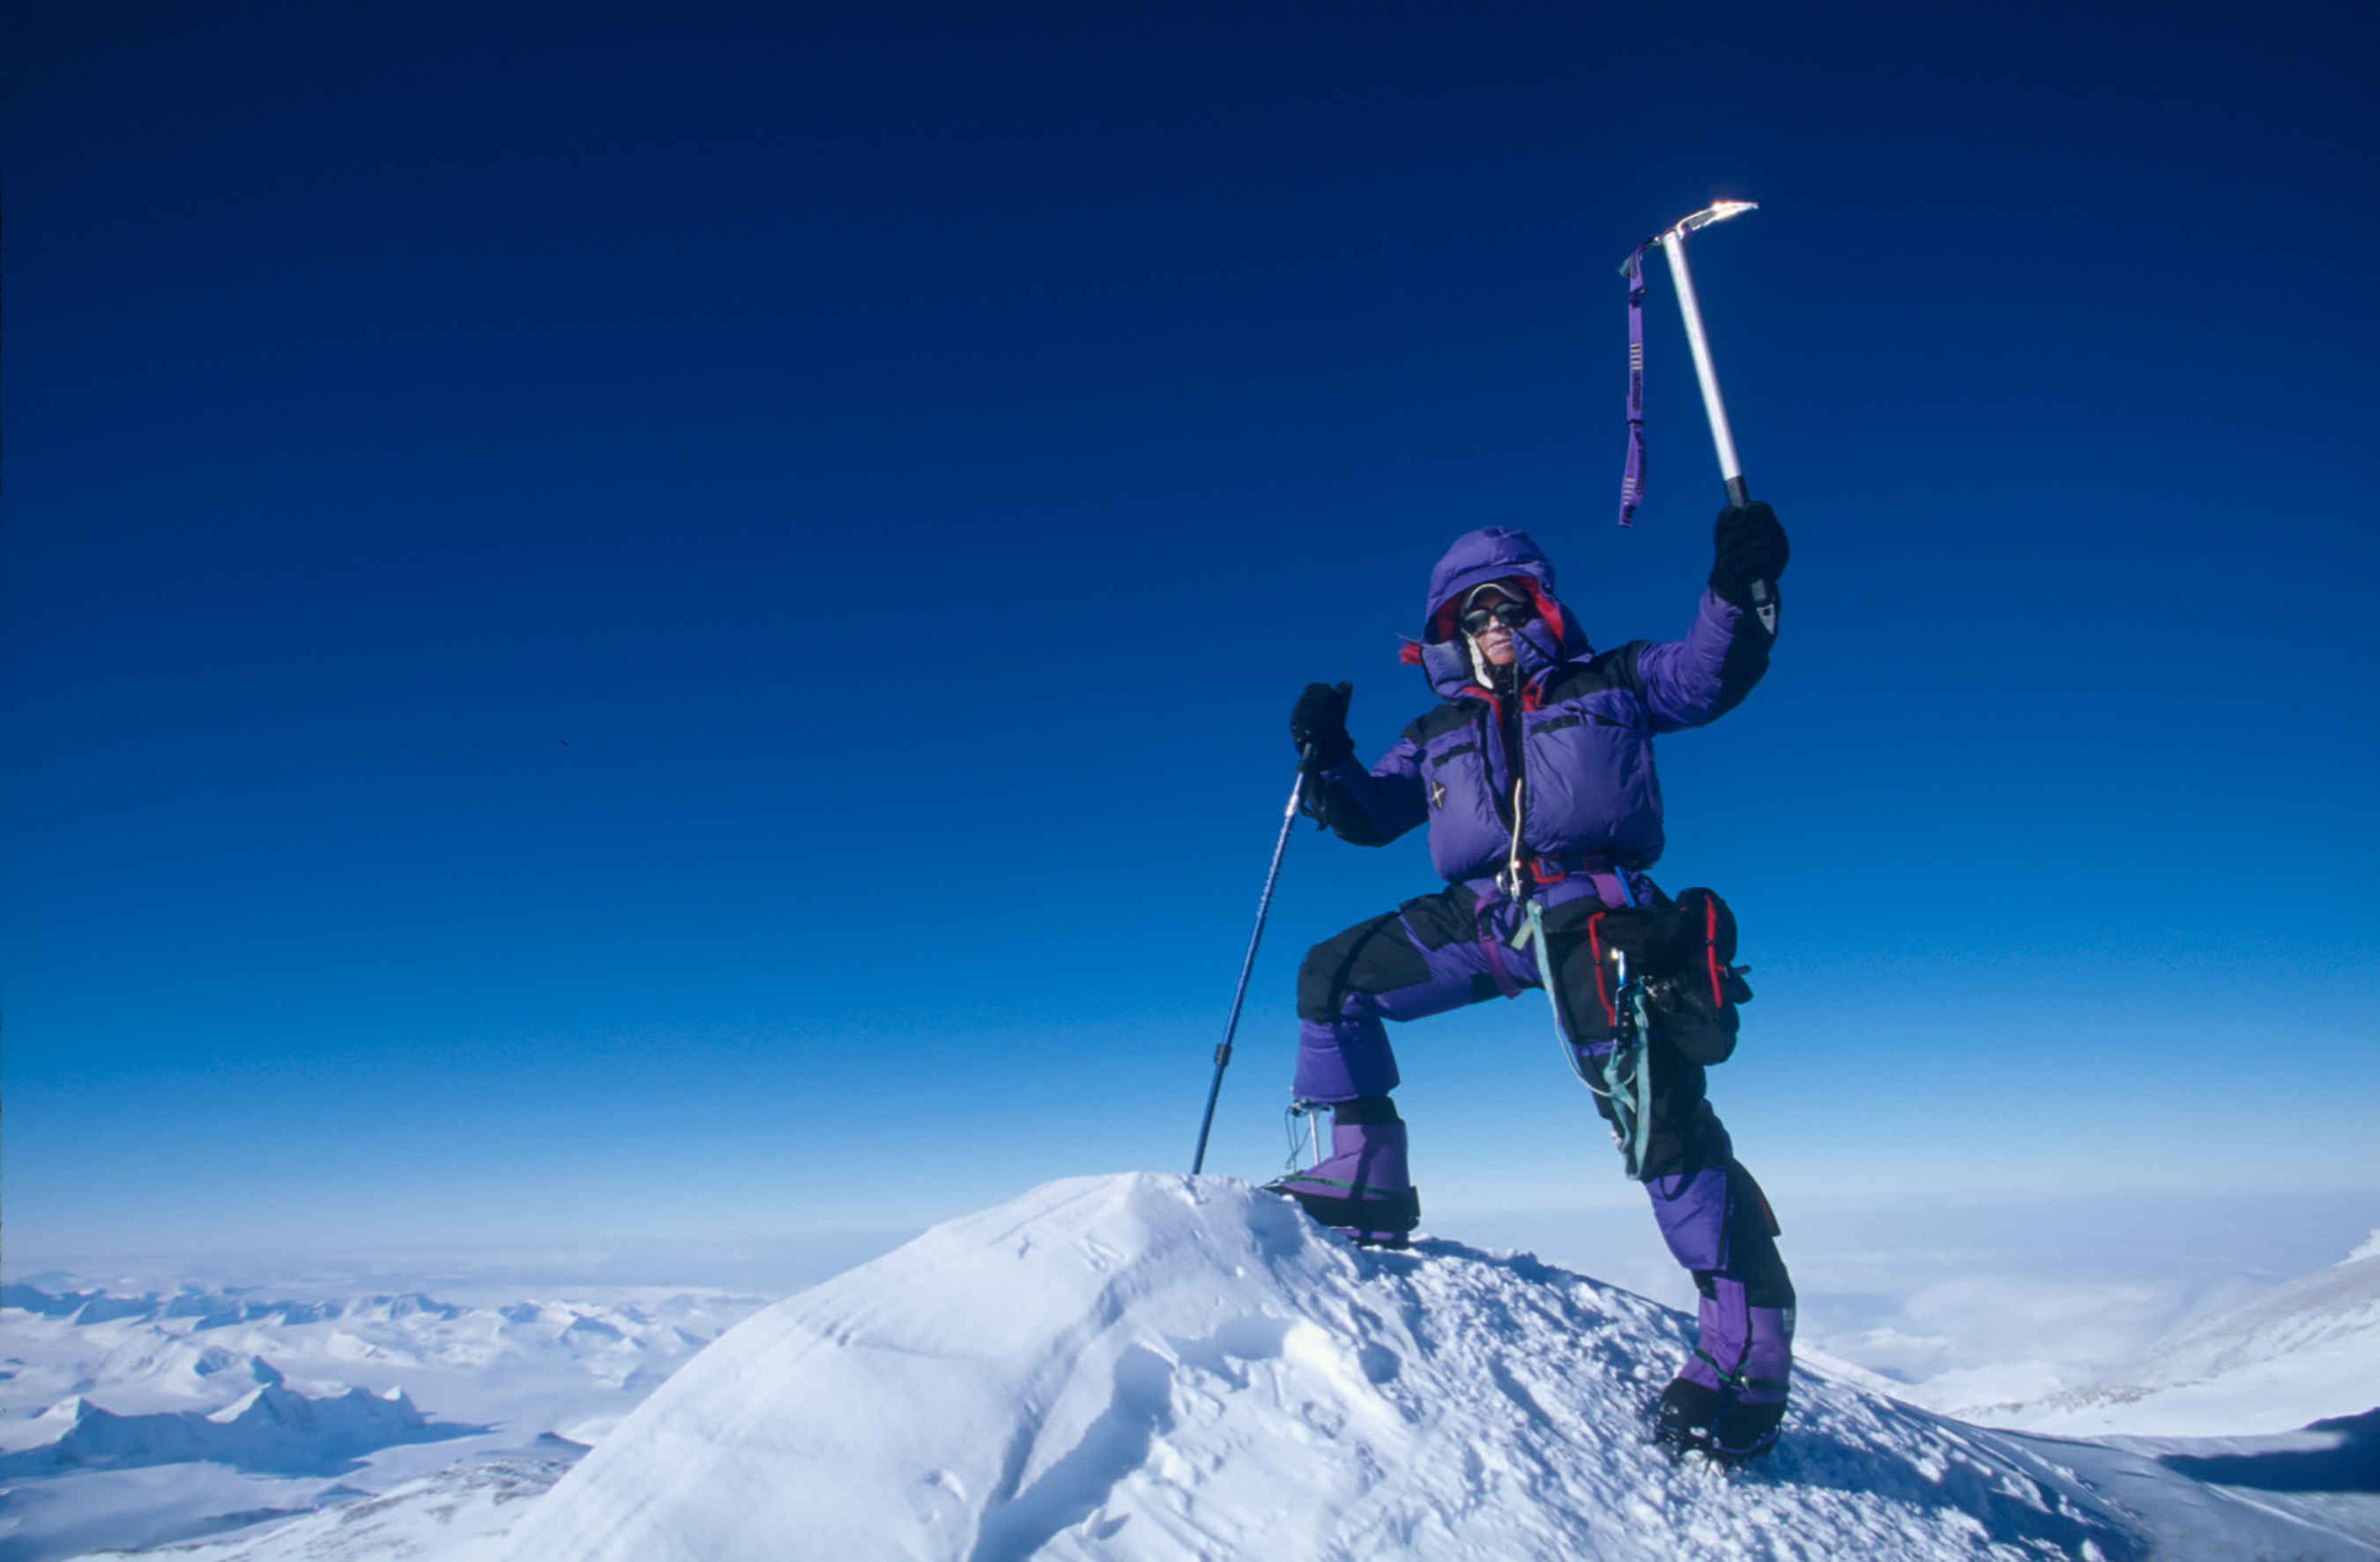 Antarctica, Jeff Shea Completes the Seven Summits Atop Mount Vinson, 1997